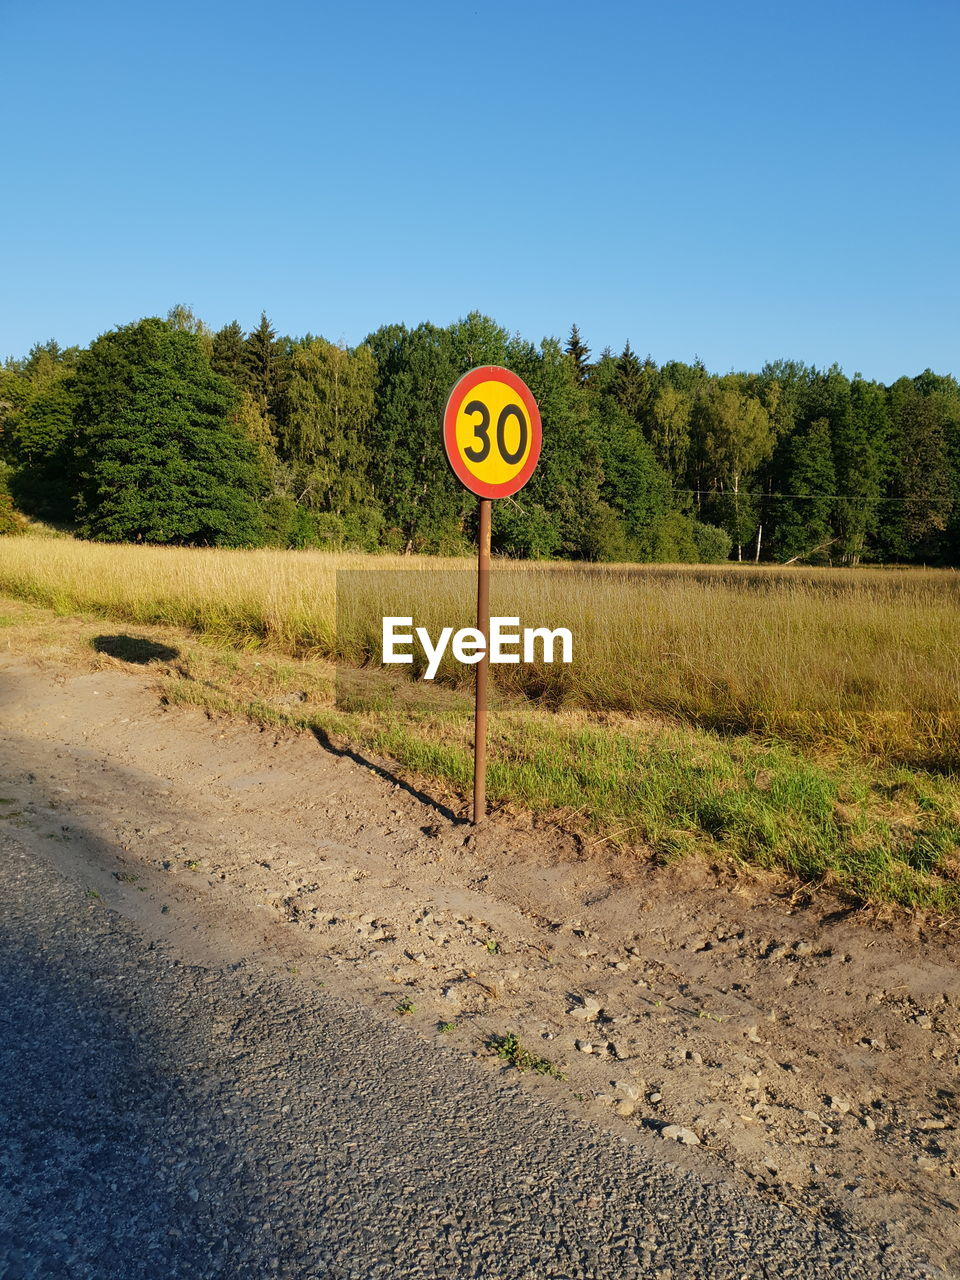 road, sign, plant, tree, road sign, communication, sky, transportation, nature, clear sky, day, guidance, no people, speed limit sign, field, direction, text, land, grass, warning sign, outdoors